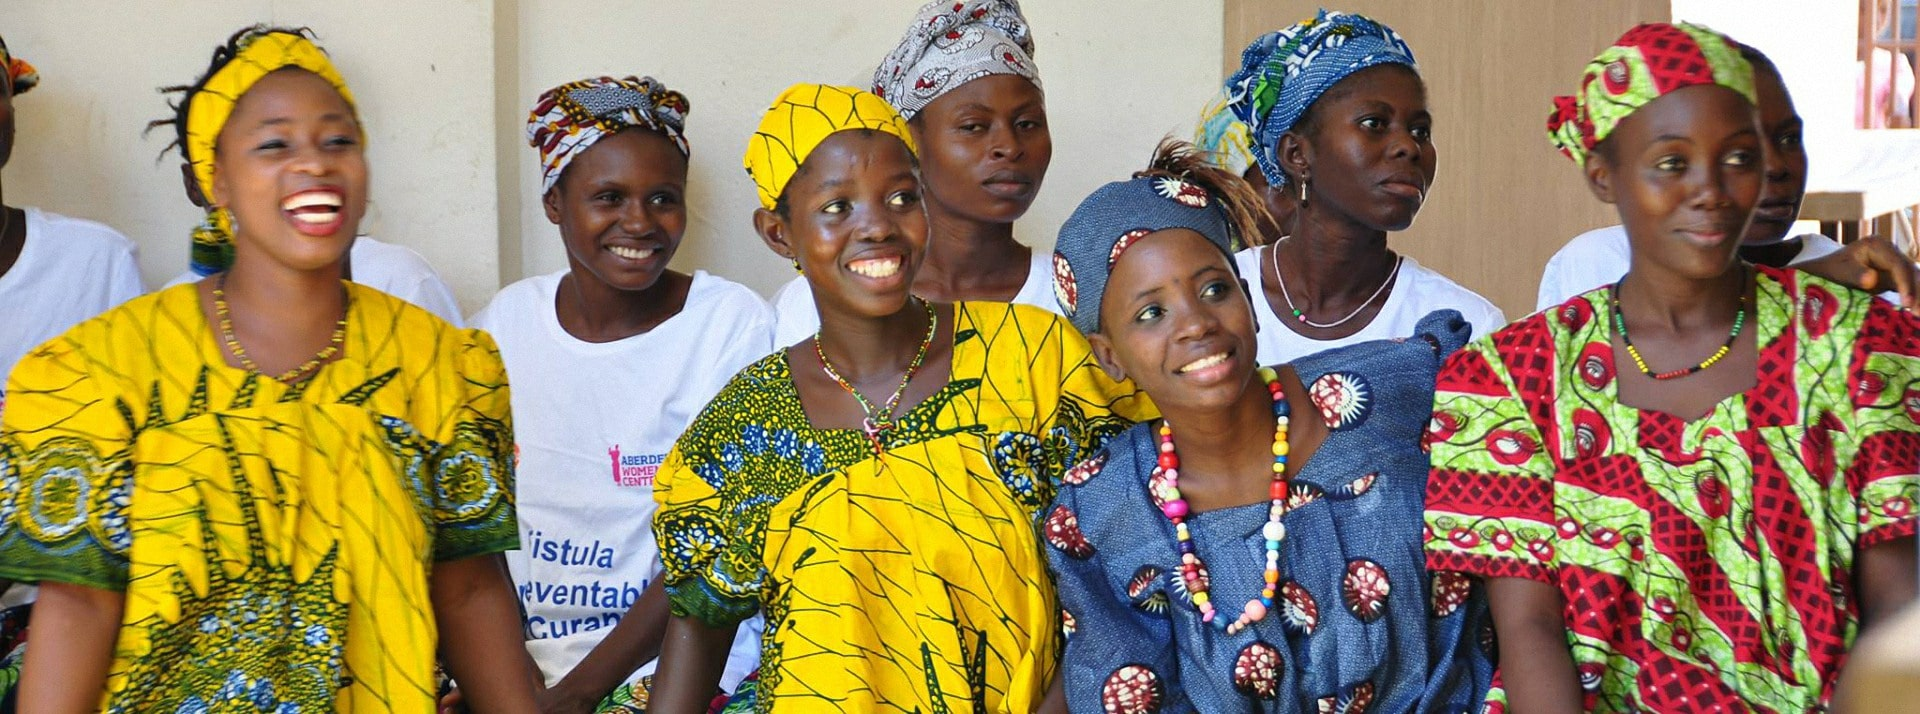 We provide underwear to women & girls in Africa suffering from obstetric fistula